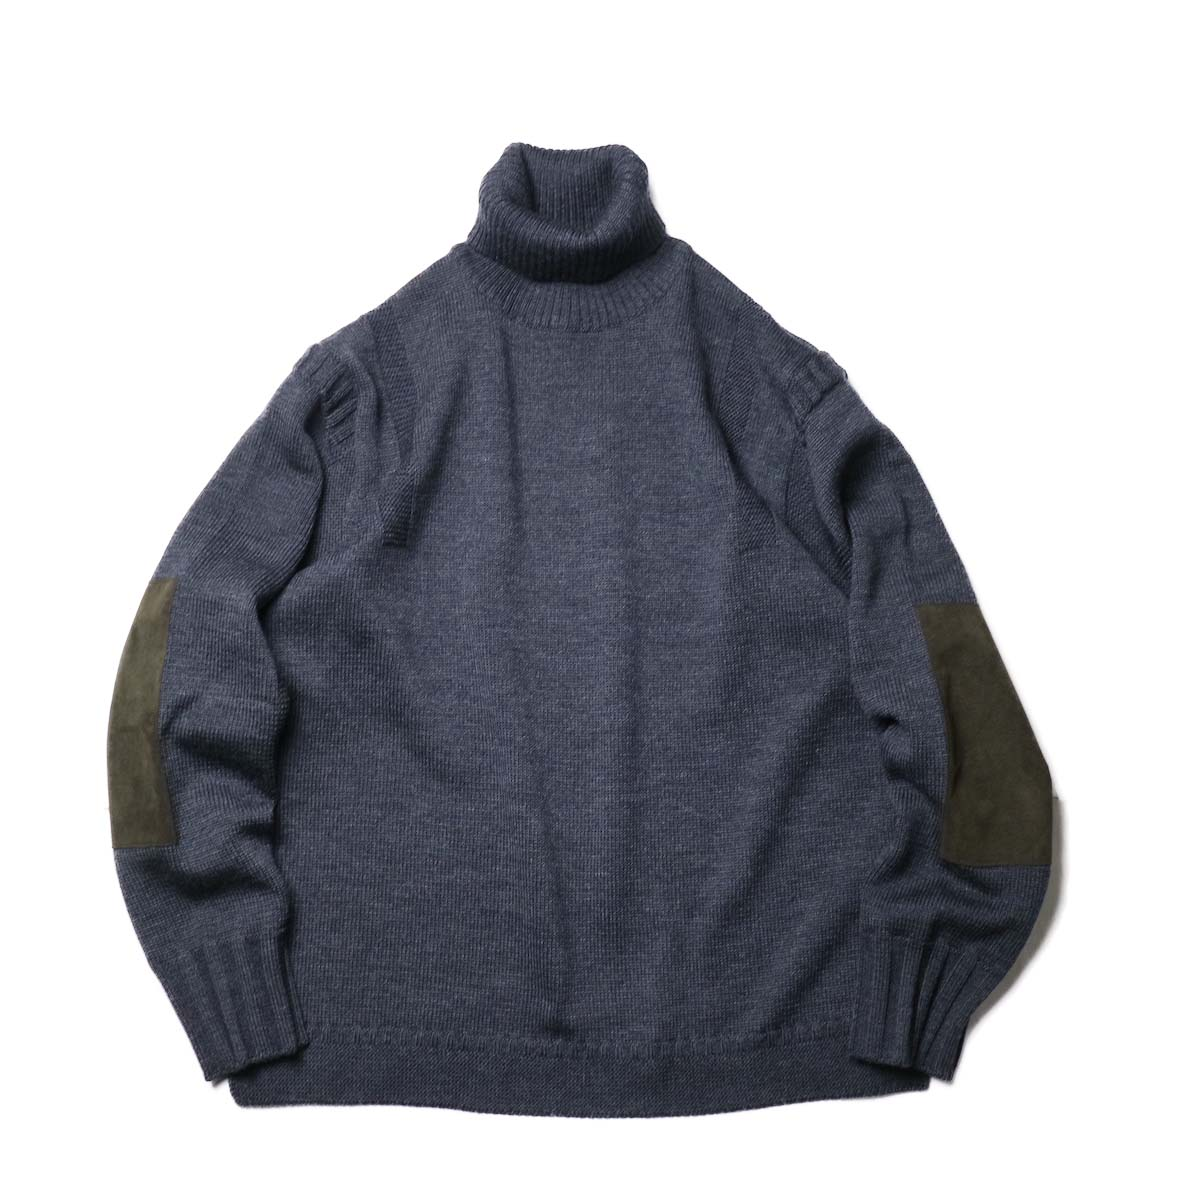 "BRENA / ""PECHEUR"" Turtle Neck Sweater (Charcoal)"